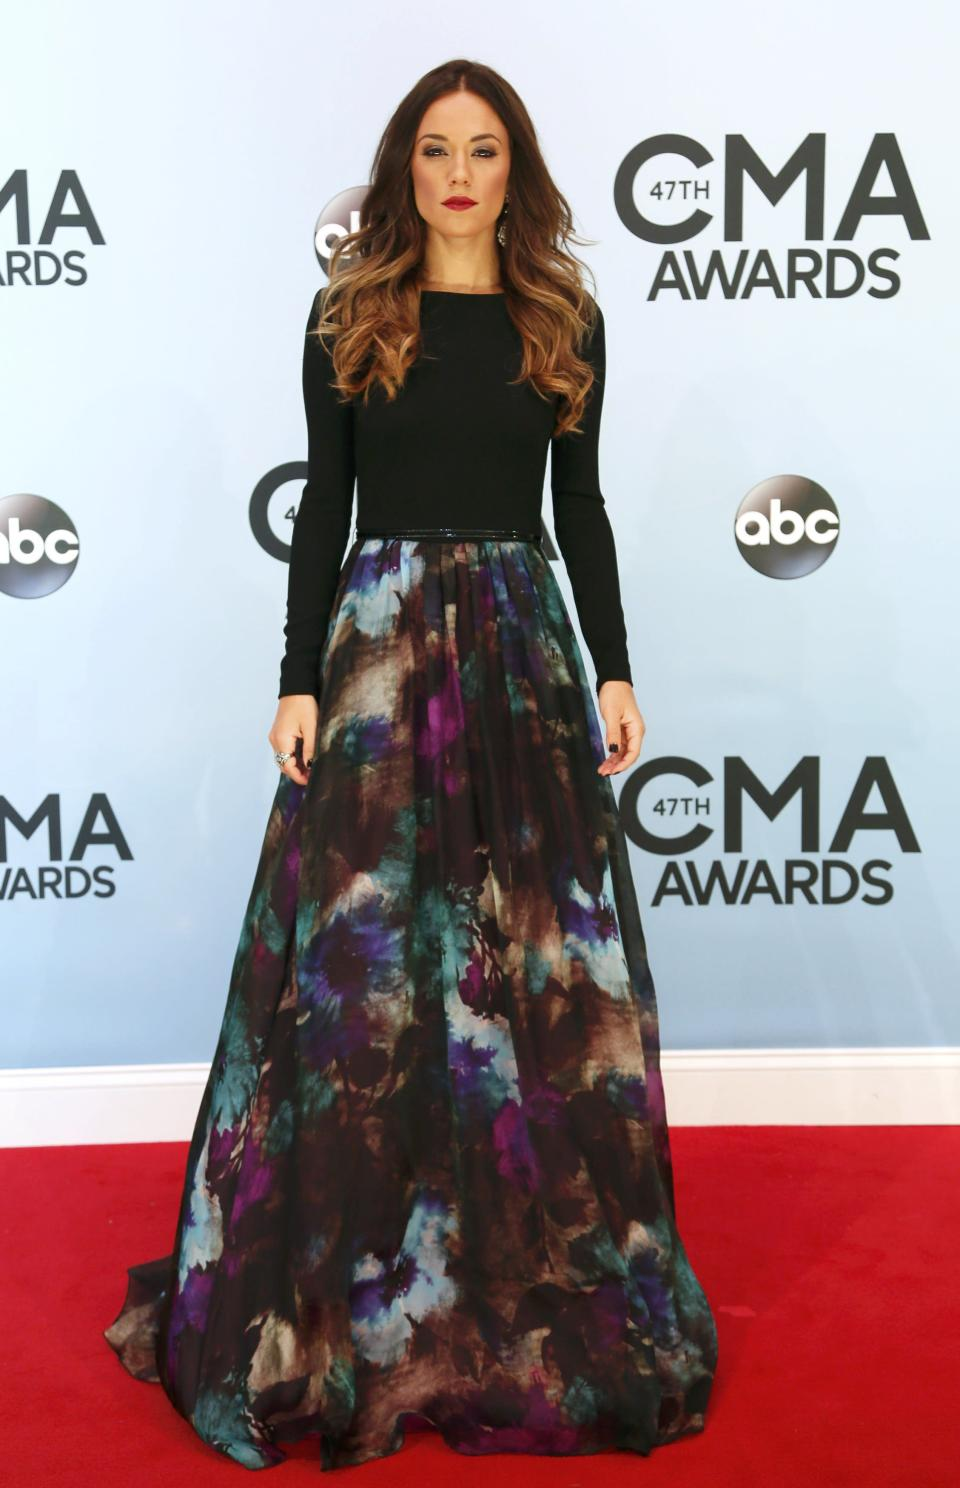 Jana Kramer poses on arrival at the 47th Country Music Association Awards in Nashville, Tennessee November 6, 2013. REUTERS/Eric Henderson (UNITED STATES - Tags: ENTERTAINMENT)